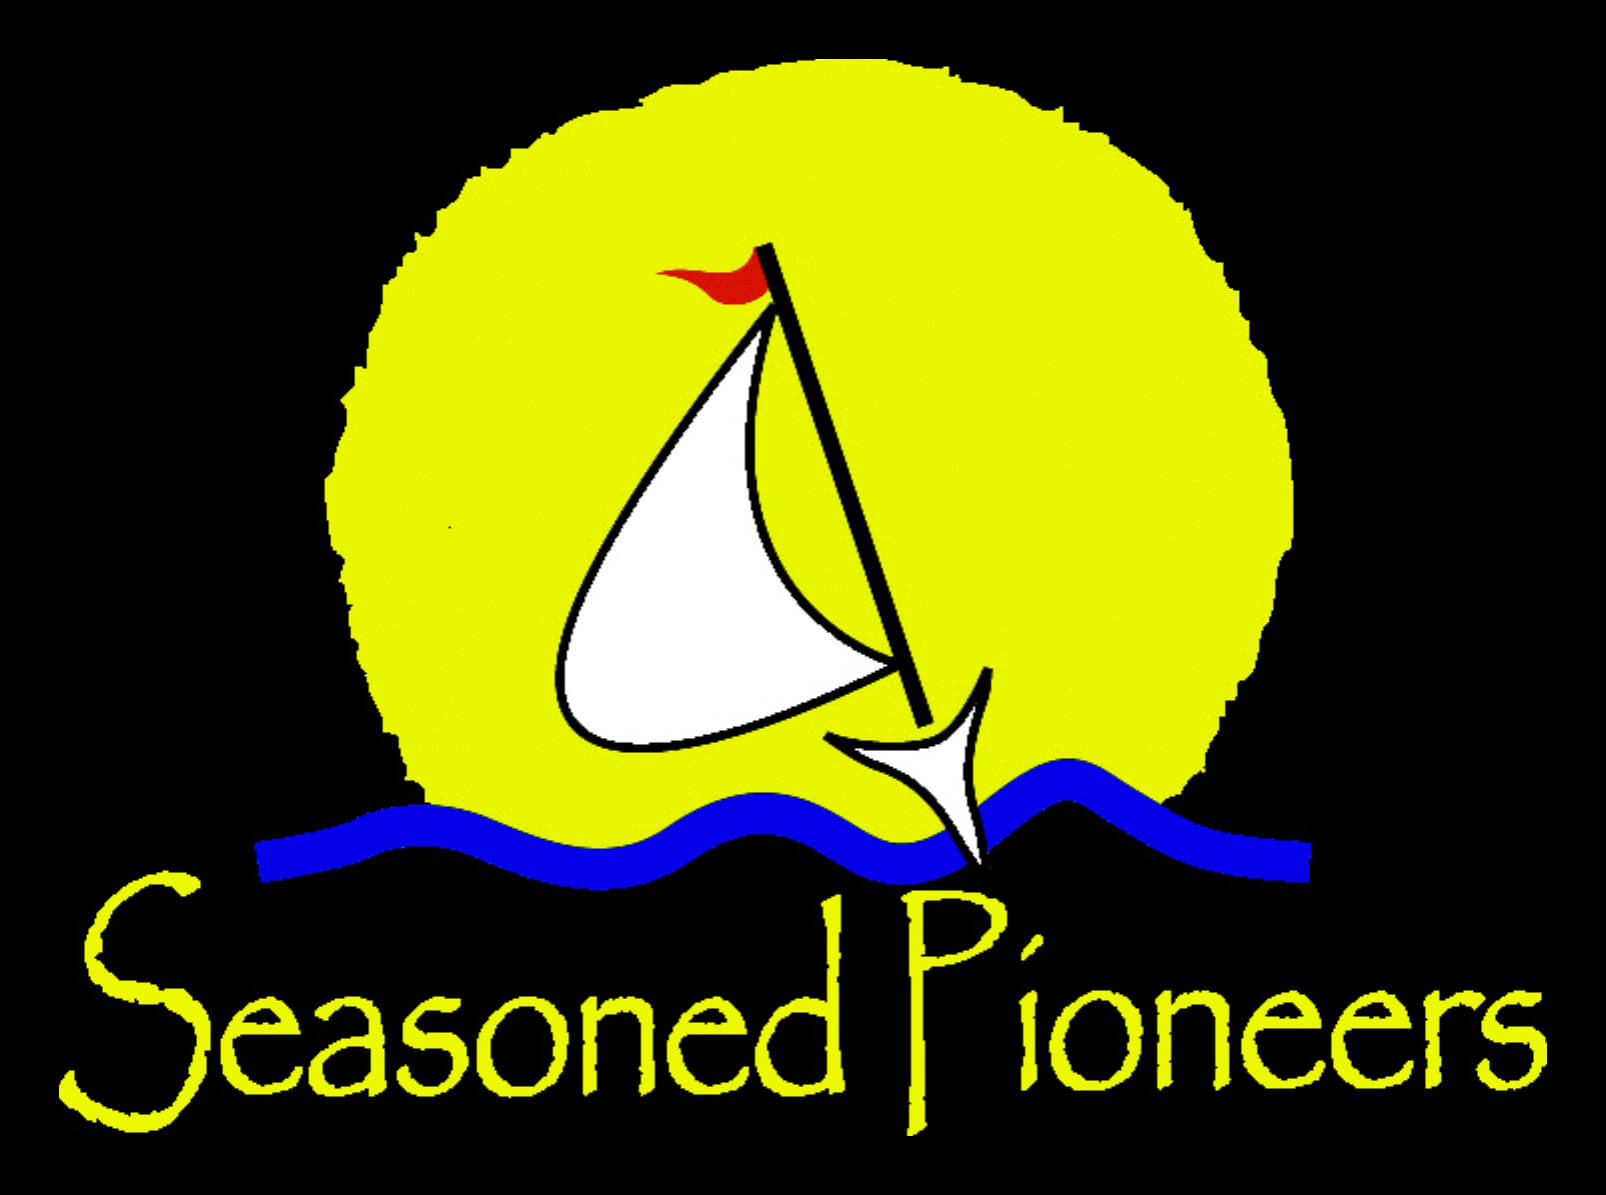 Seasoned Pioneers Logo Commercial photography